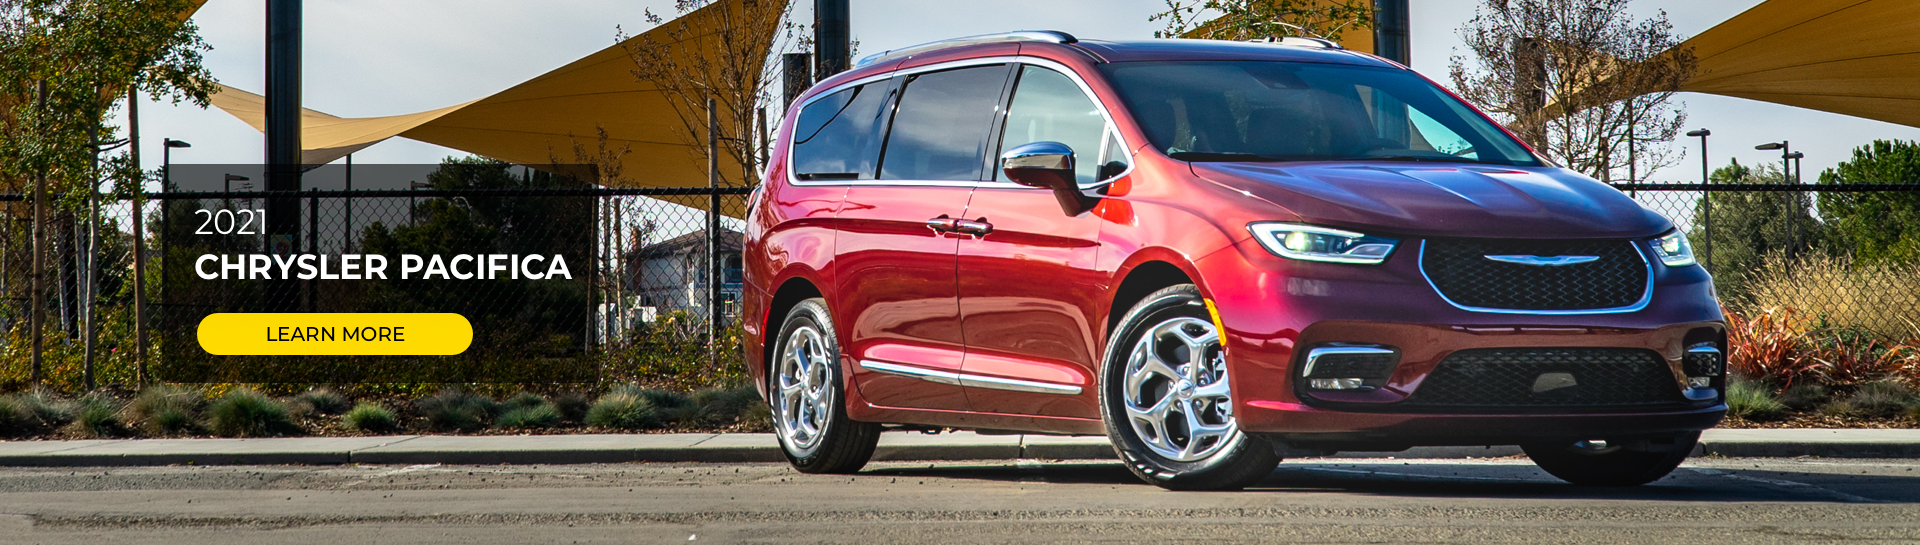 2021 Chrysler Pacifica Desktop